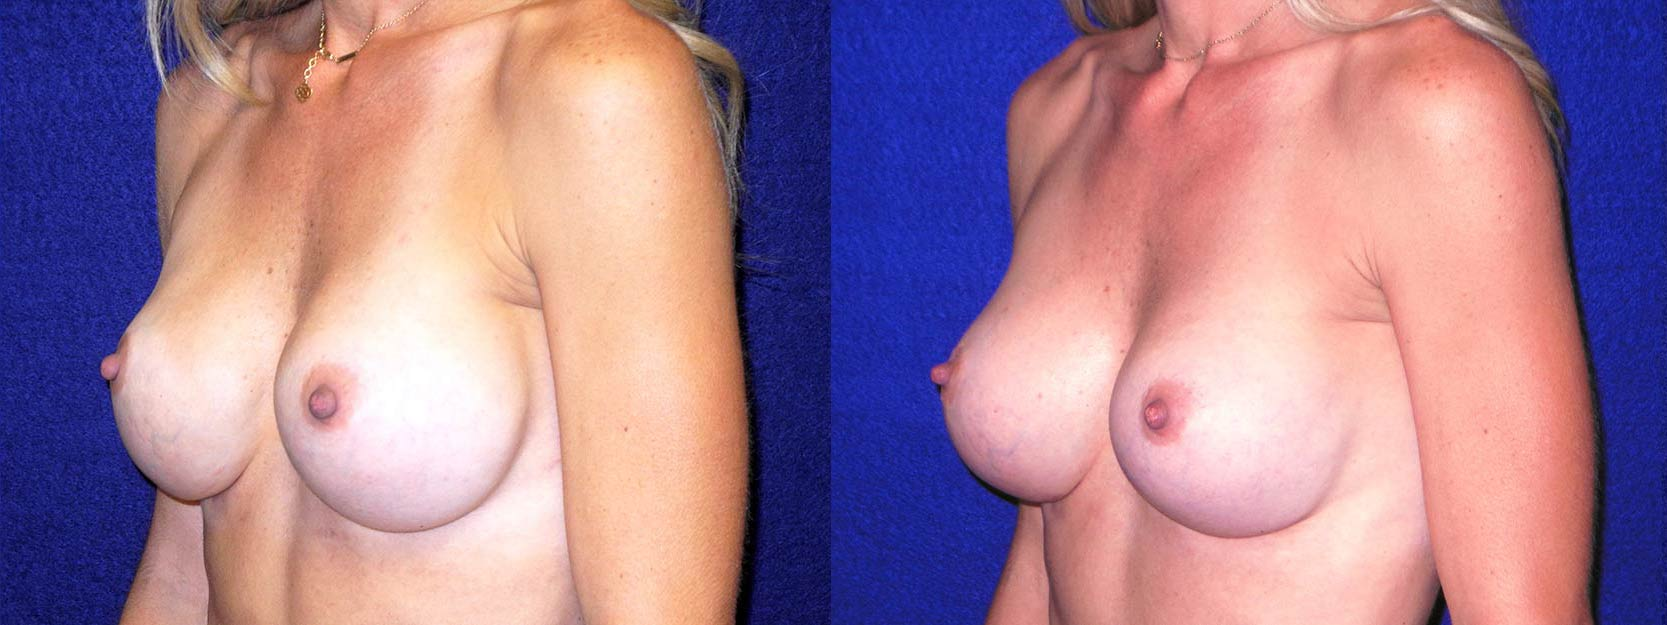 Left 3/4 View - Implant Revision with Silicone Implants